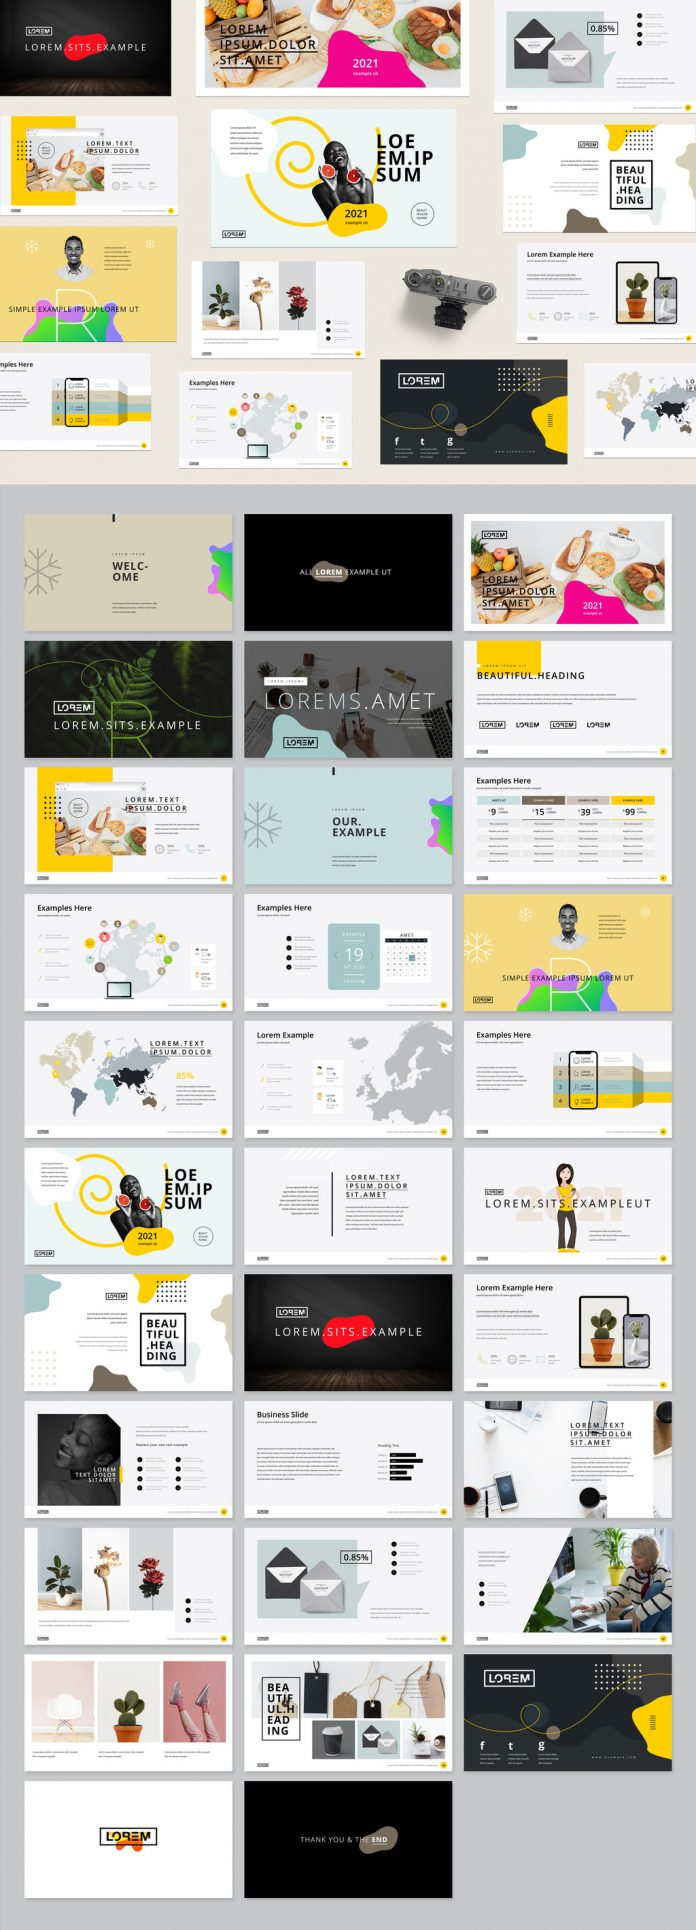 Adobe InDesign Presentation Layout with Yellow Accents.